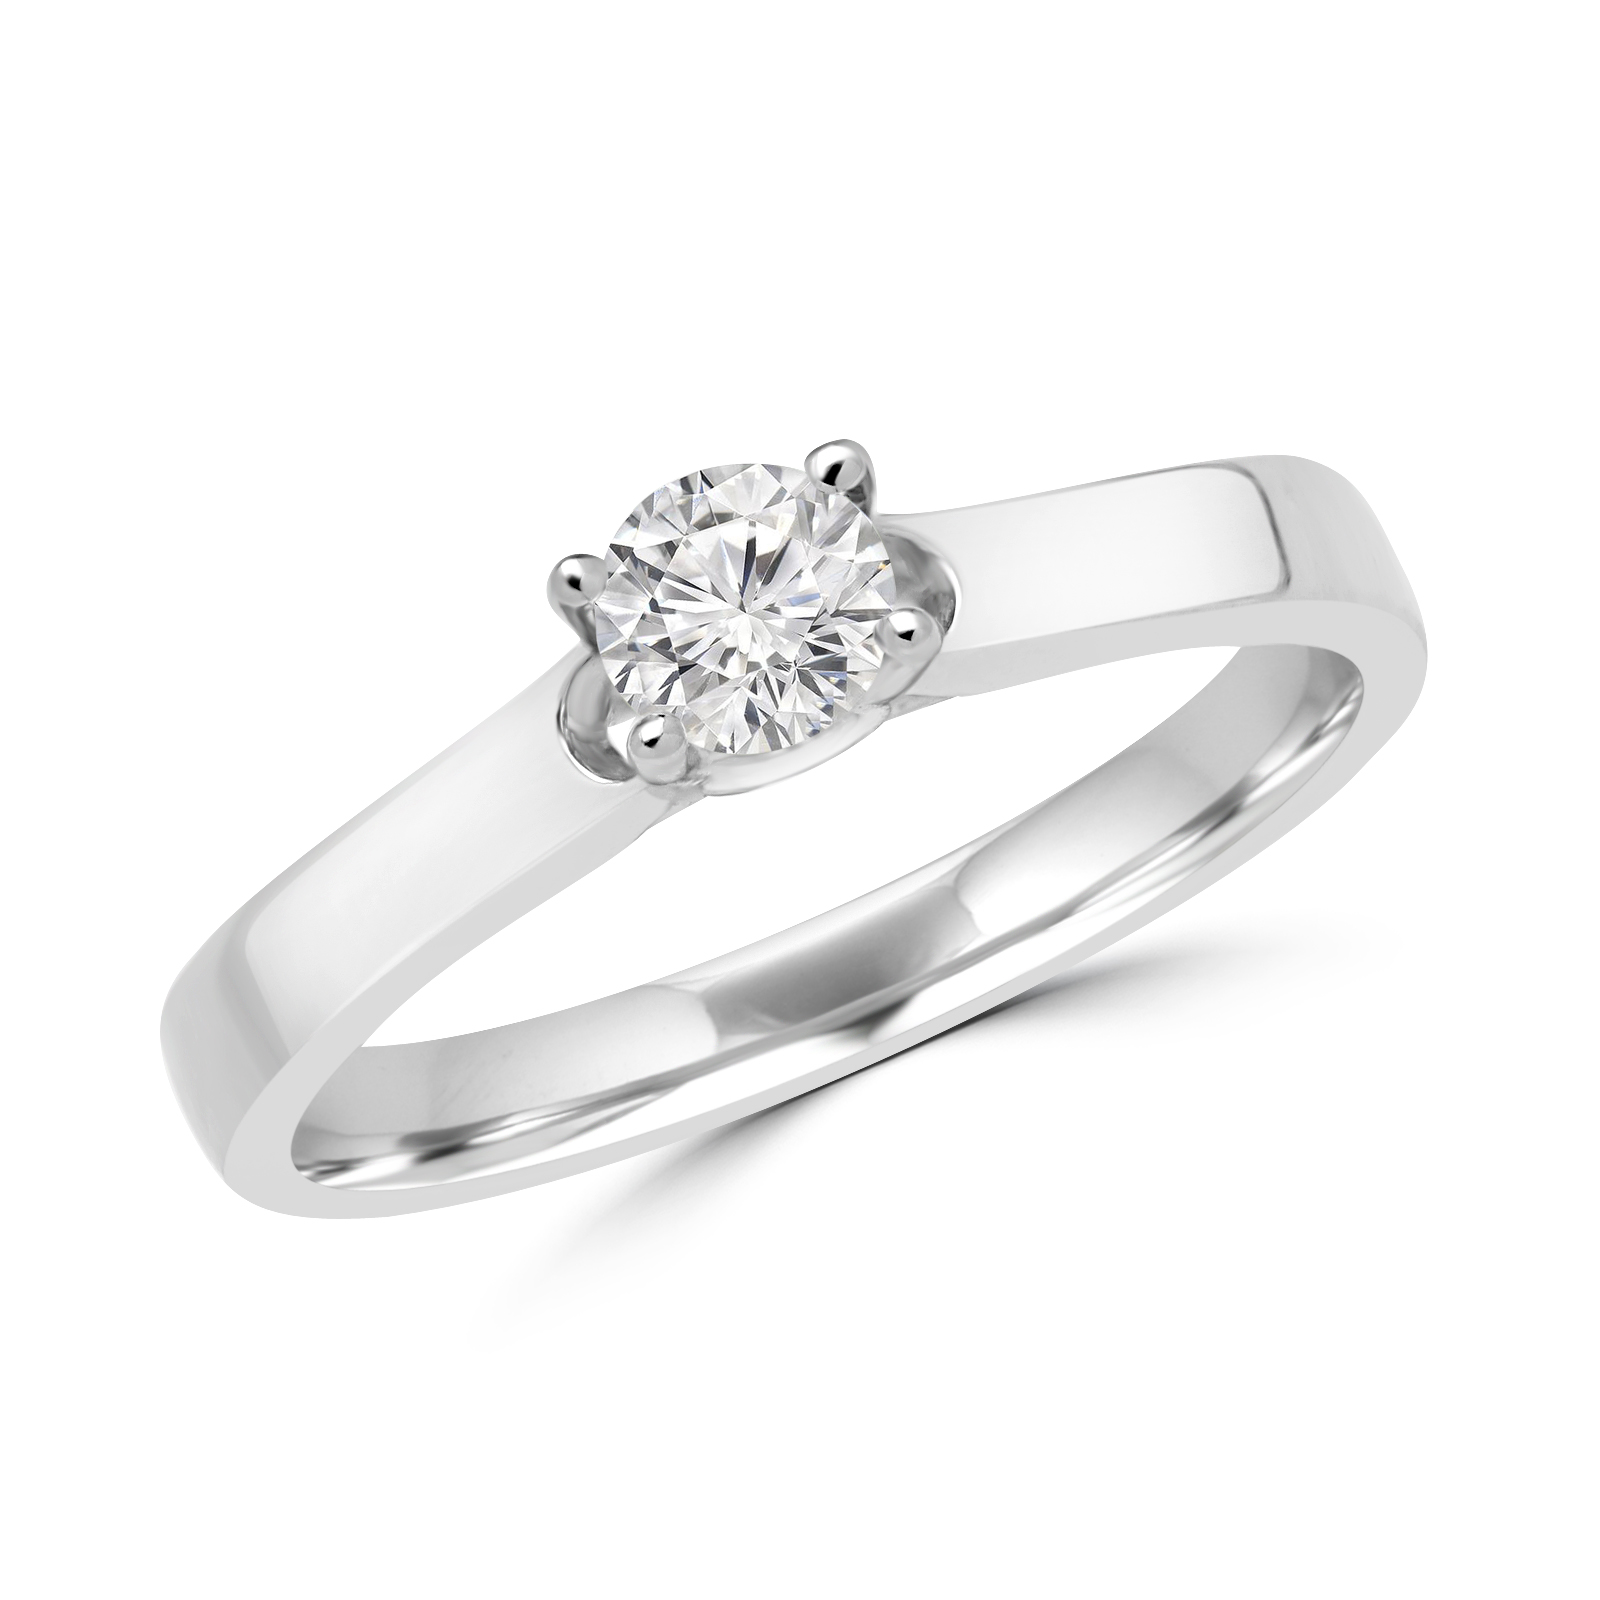 0.22+0.06 CARAT ROUND BRILLIANT DIAMOND ENGAGEMENT RING IN WHITE GOLD